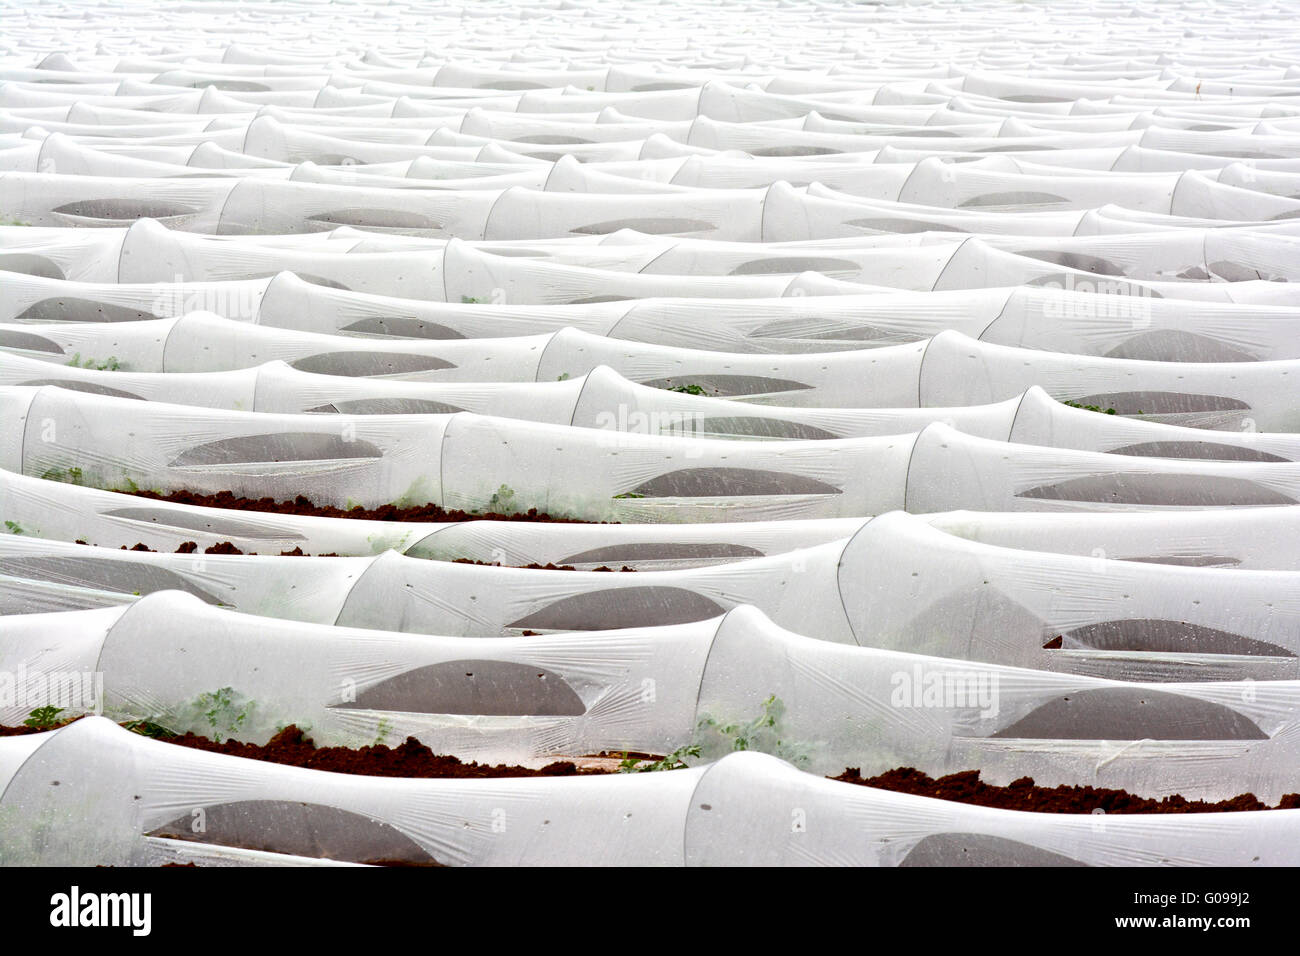 Field of greenhouses - Stock Image